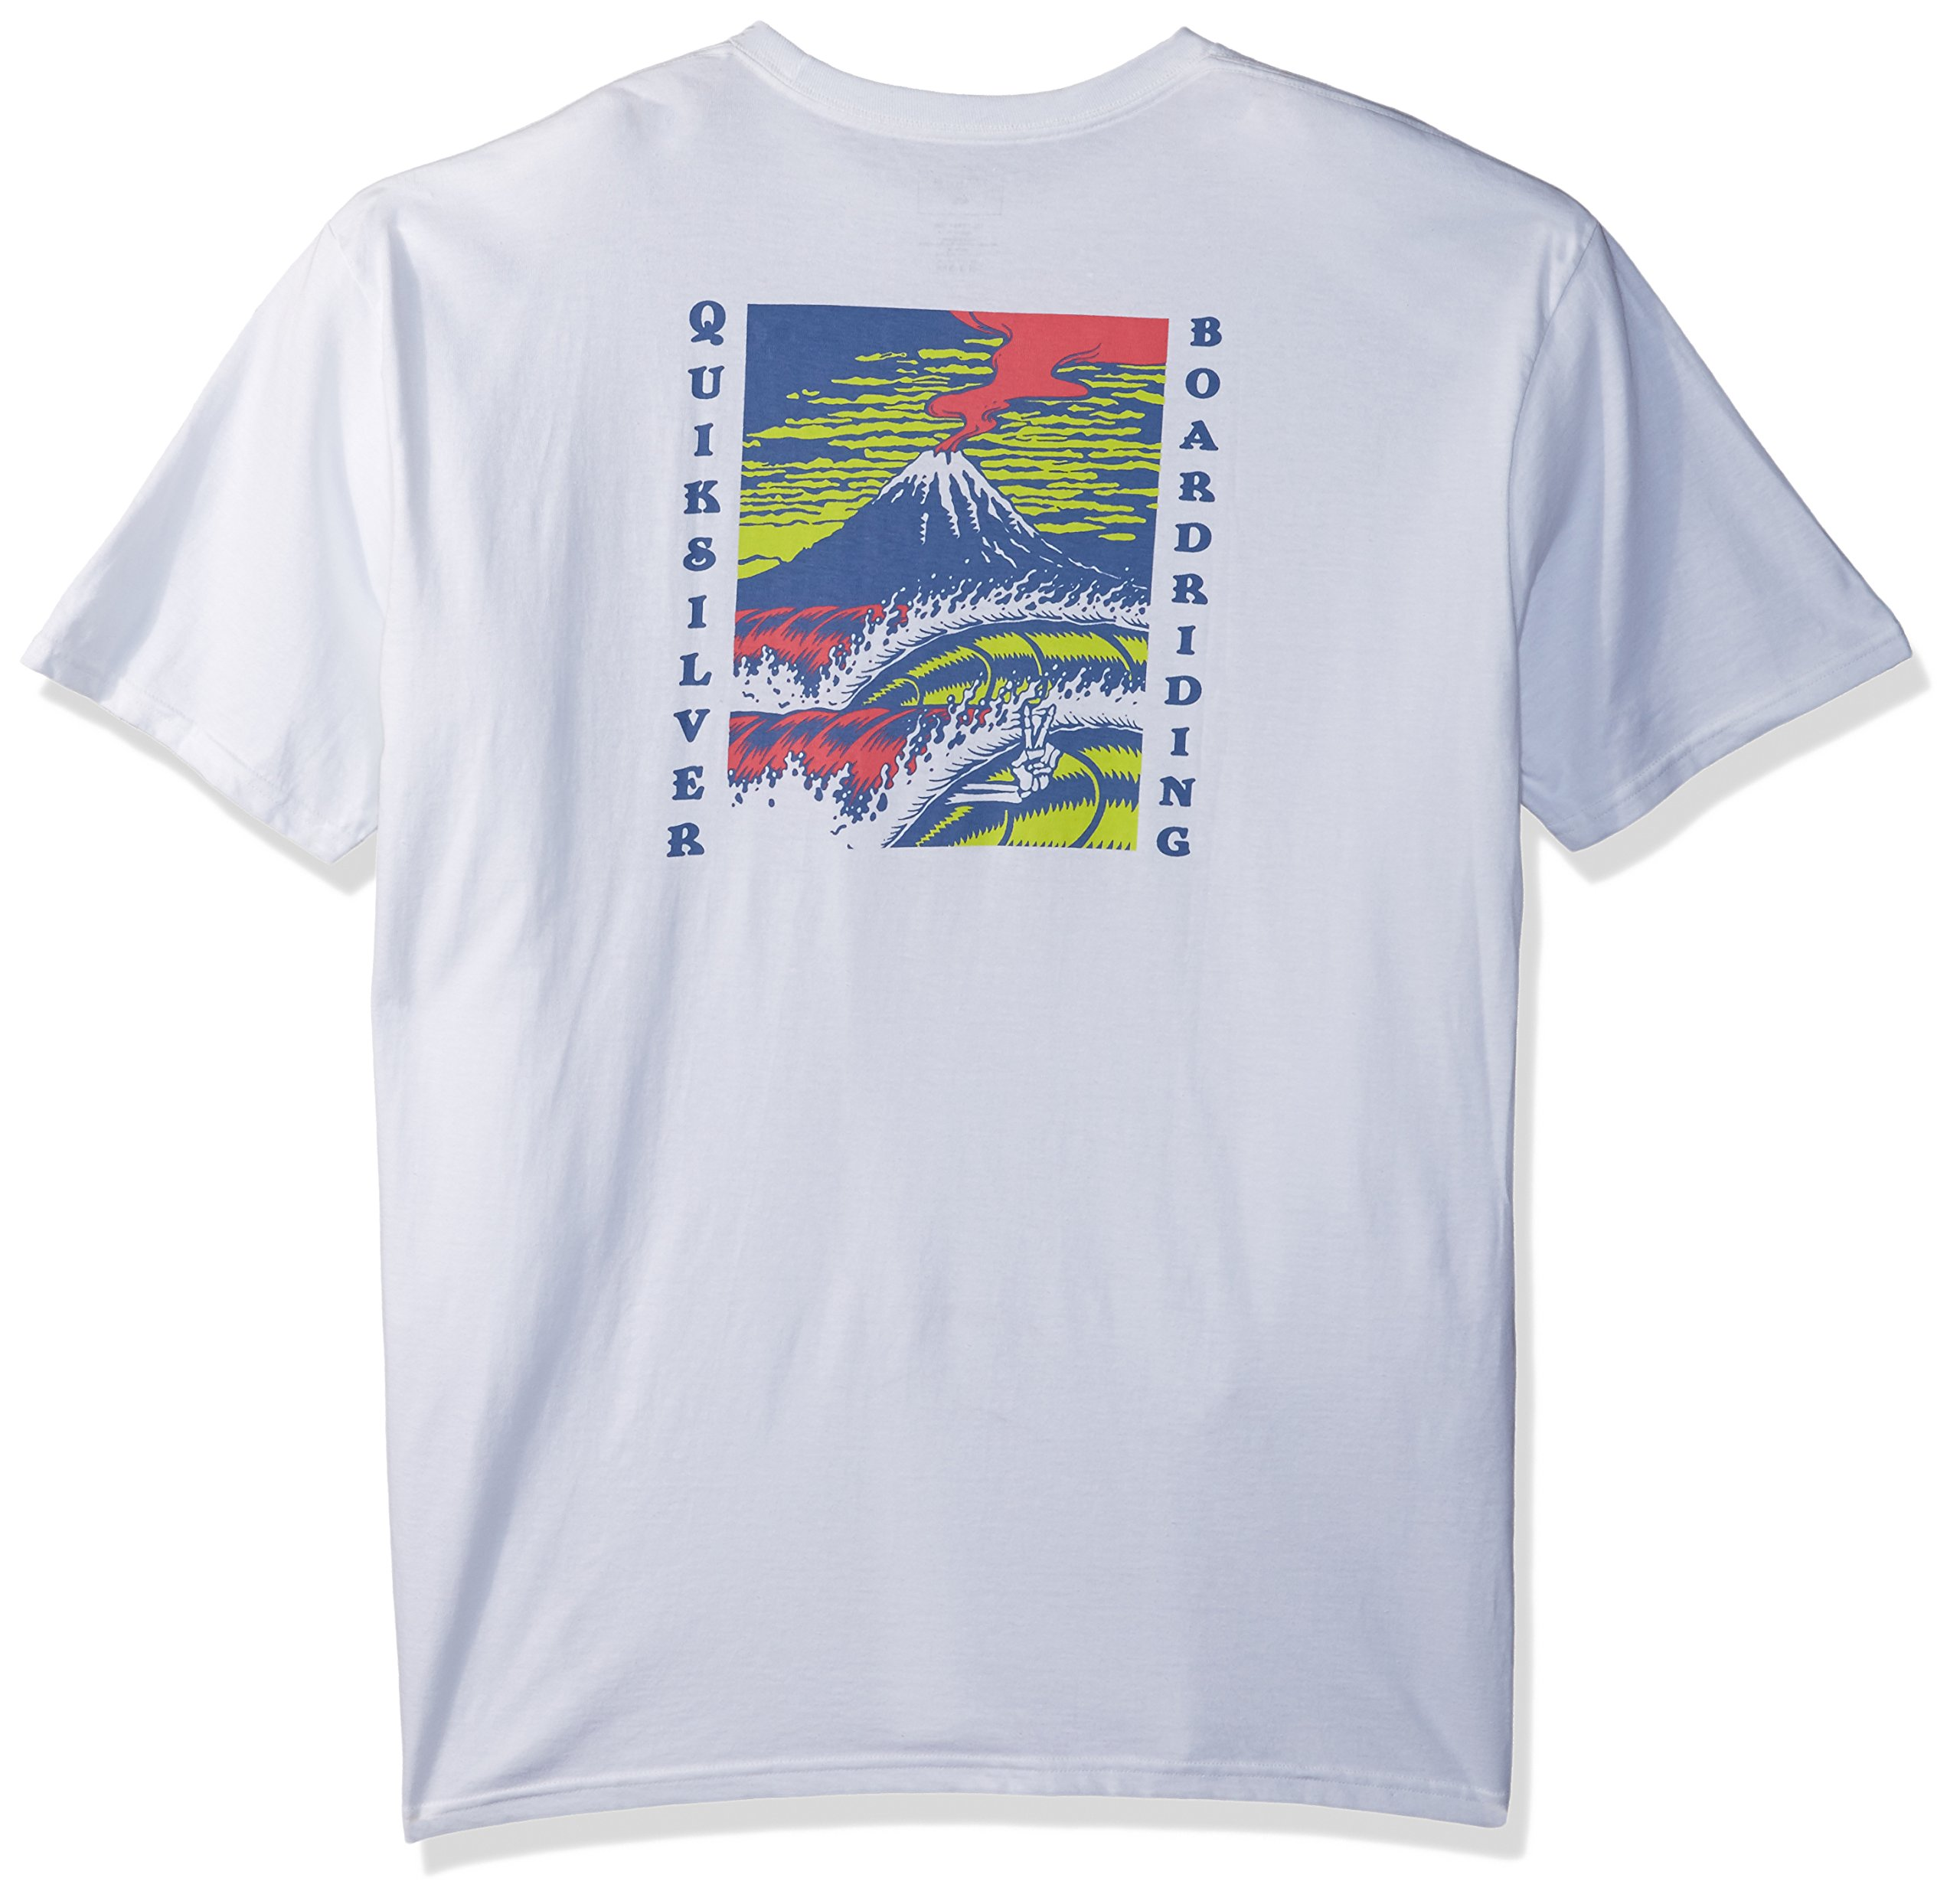 Quiksilver Men's Tropic Eruption Tee Shirt, White, XL by Quiksilver (Image #2)